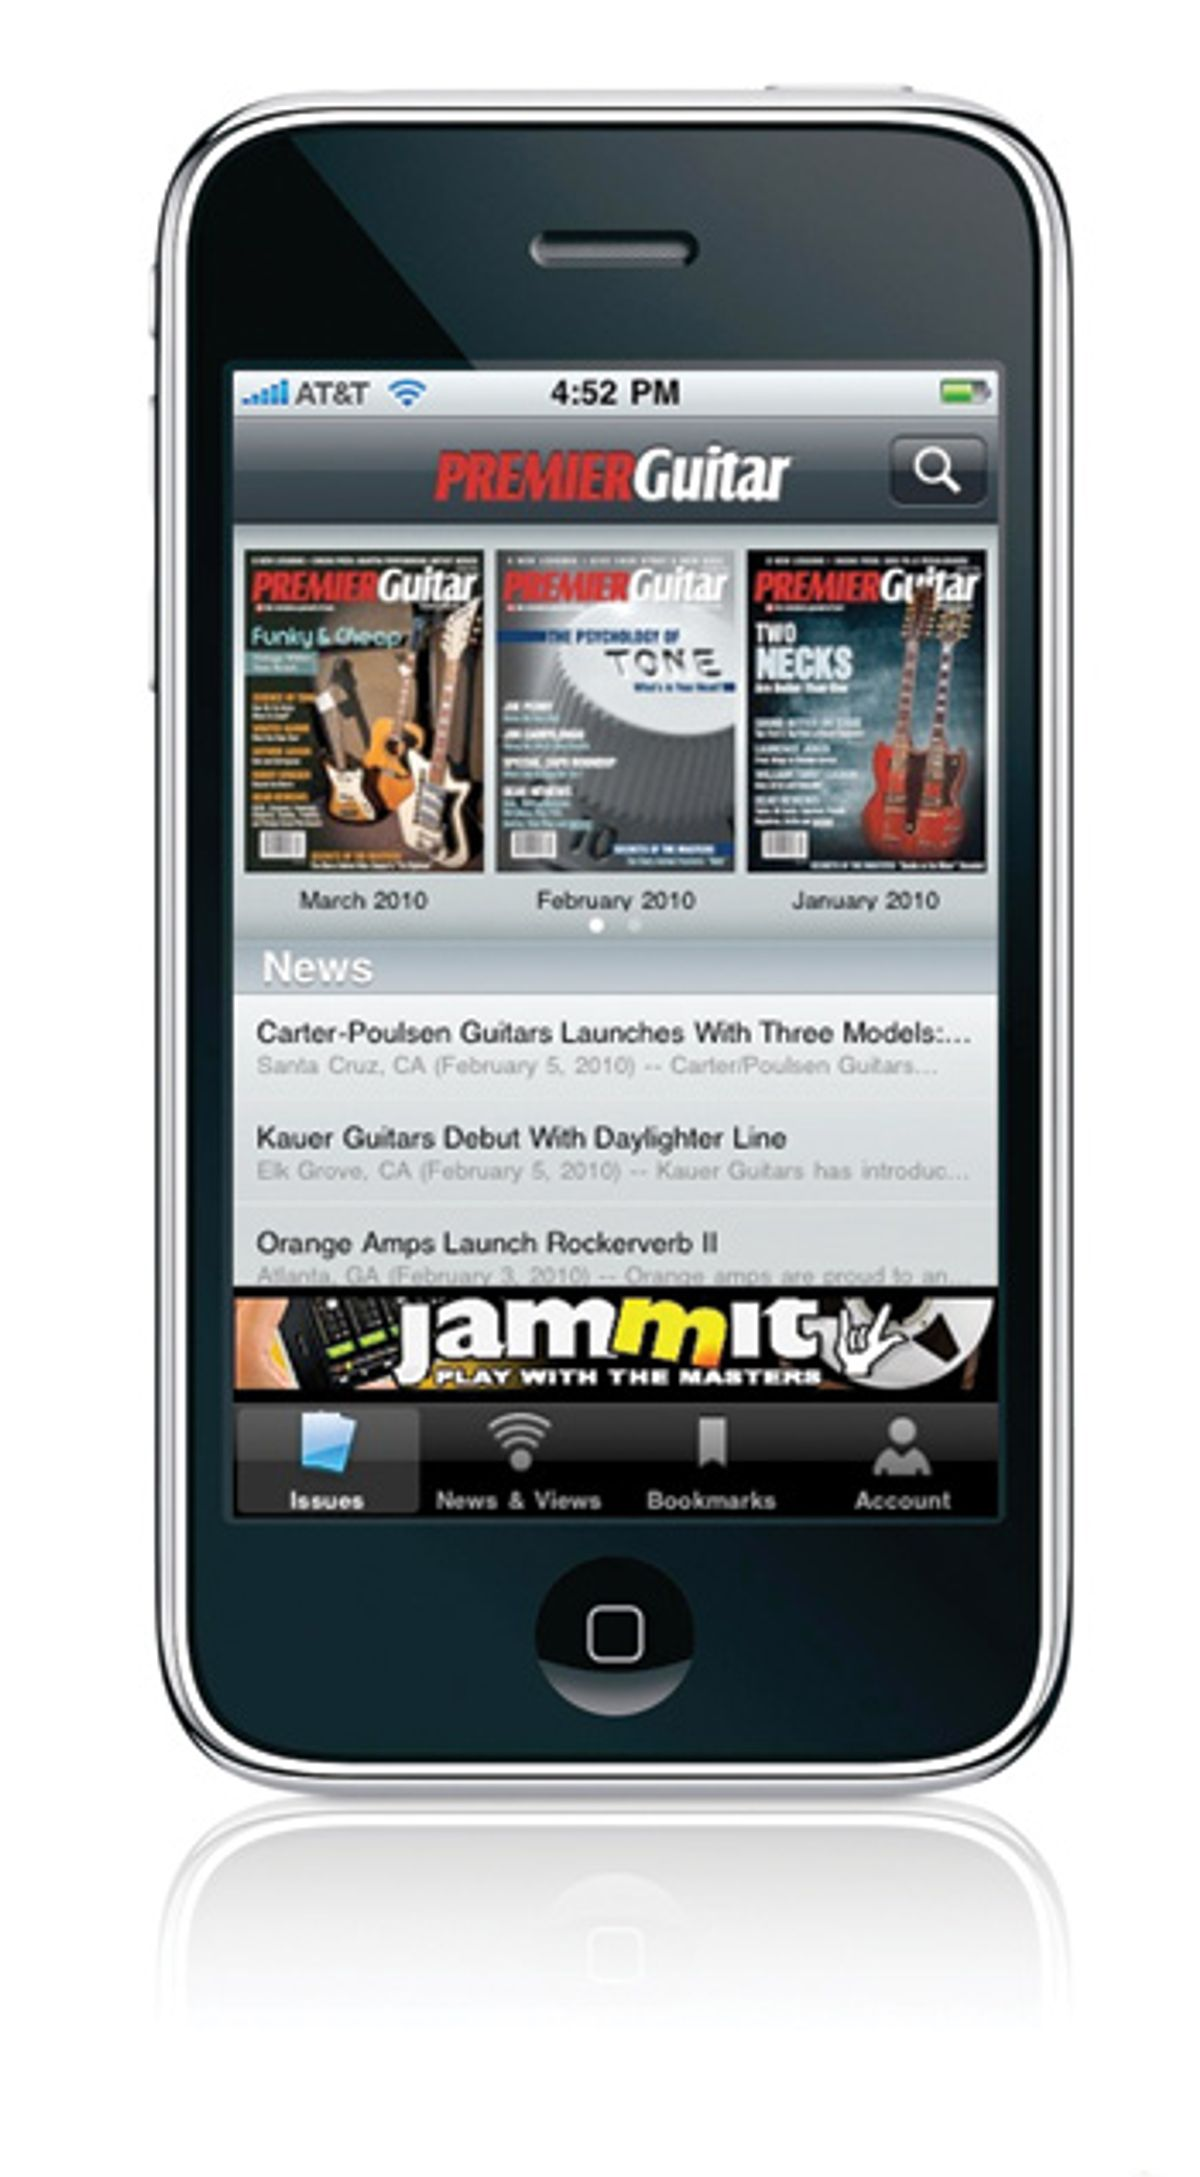 Introducing the Premier Guitar iPhone and iPod Touch App